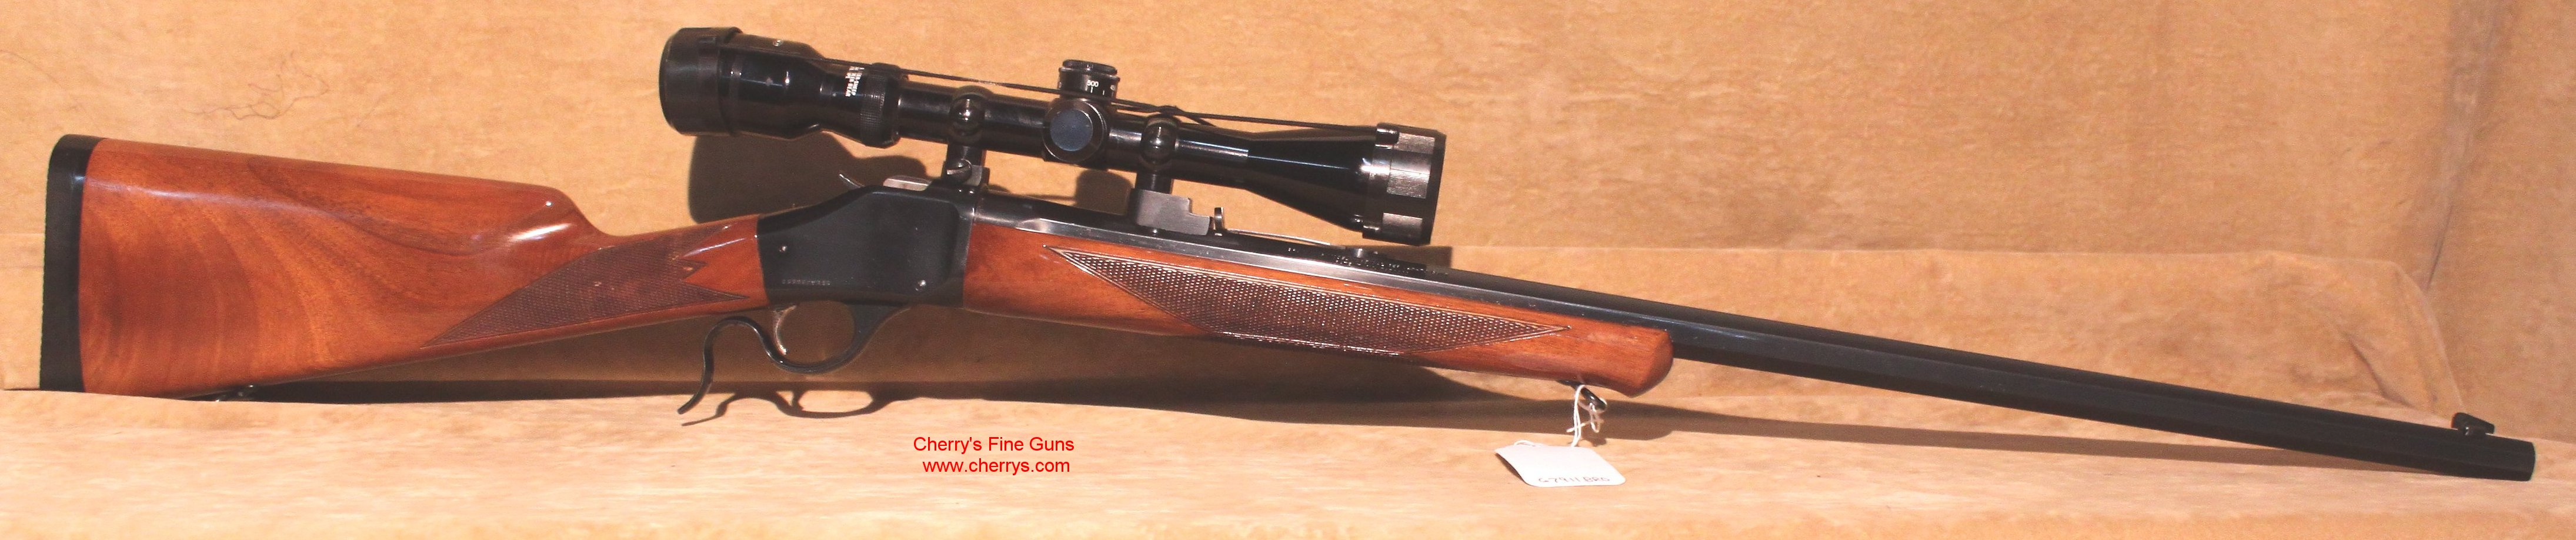 Cherrys Long Gun Inventory Page Remington870partsdiagram The Butt Plate Rests Against Shooters Factory Swivels 125000 1